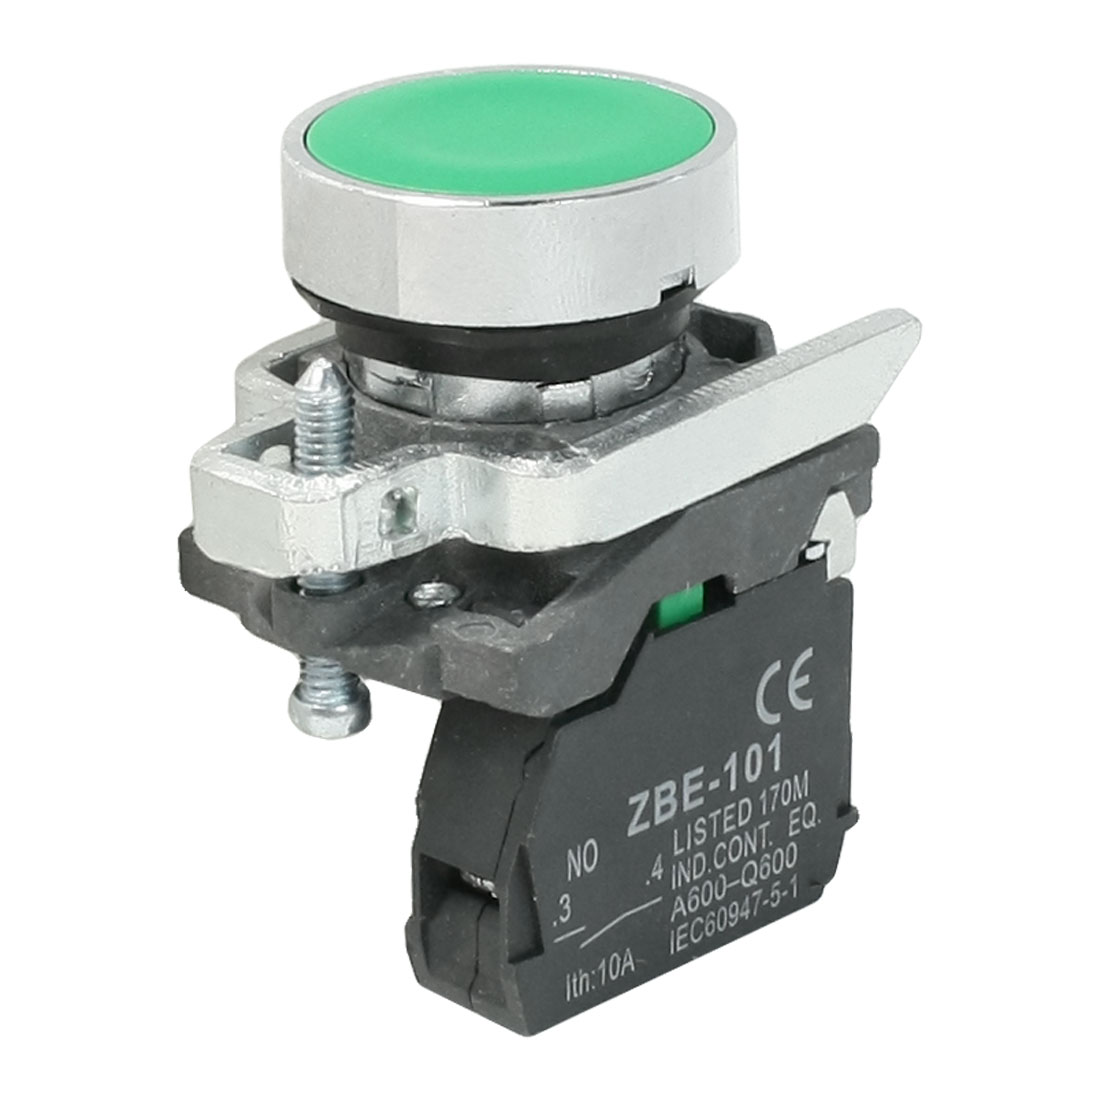 AC 240V 6A 1NO 1NC SPST Momentary Green Flat Round Push Button Switch